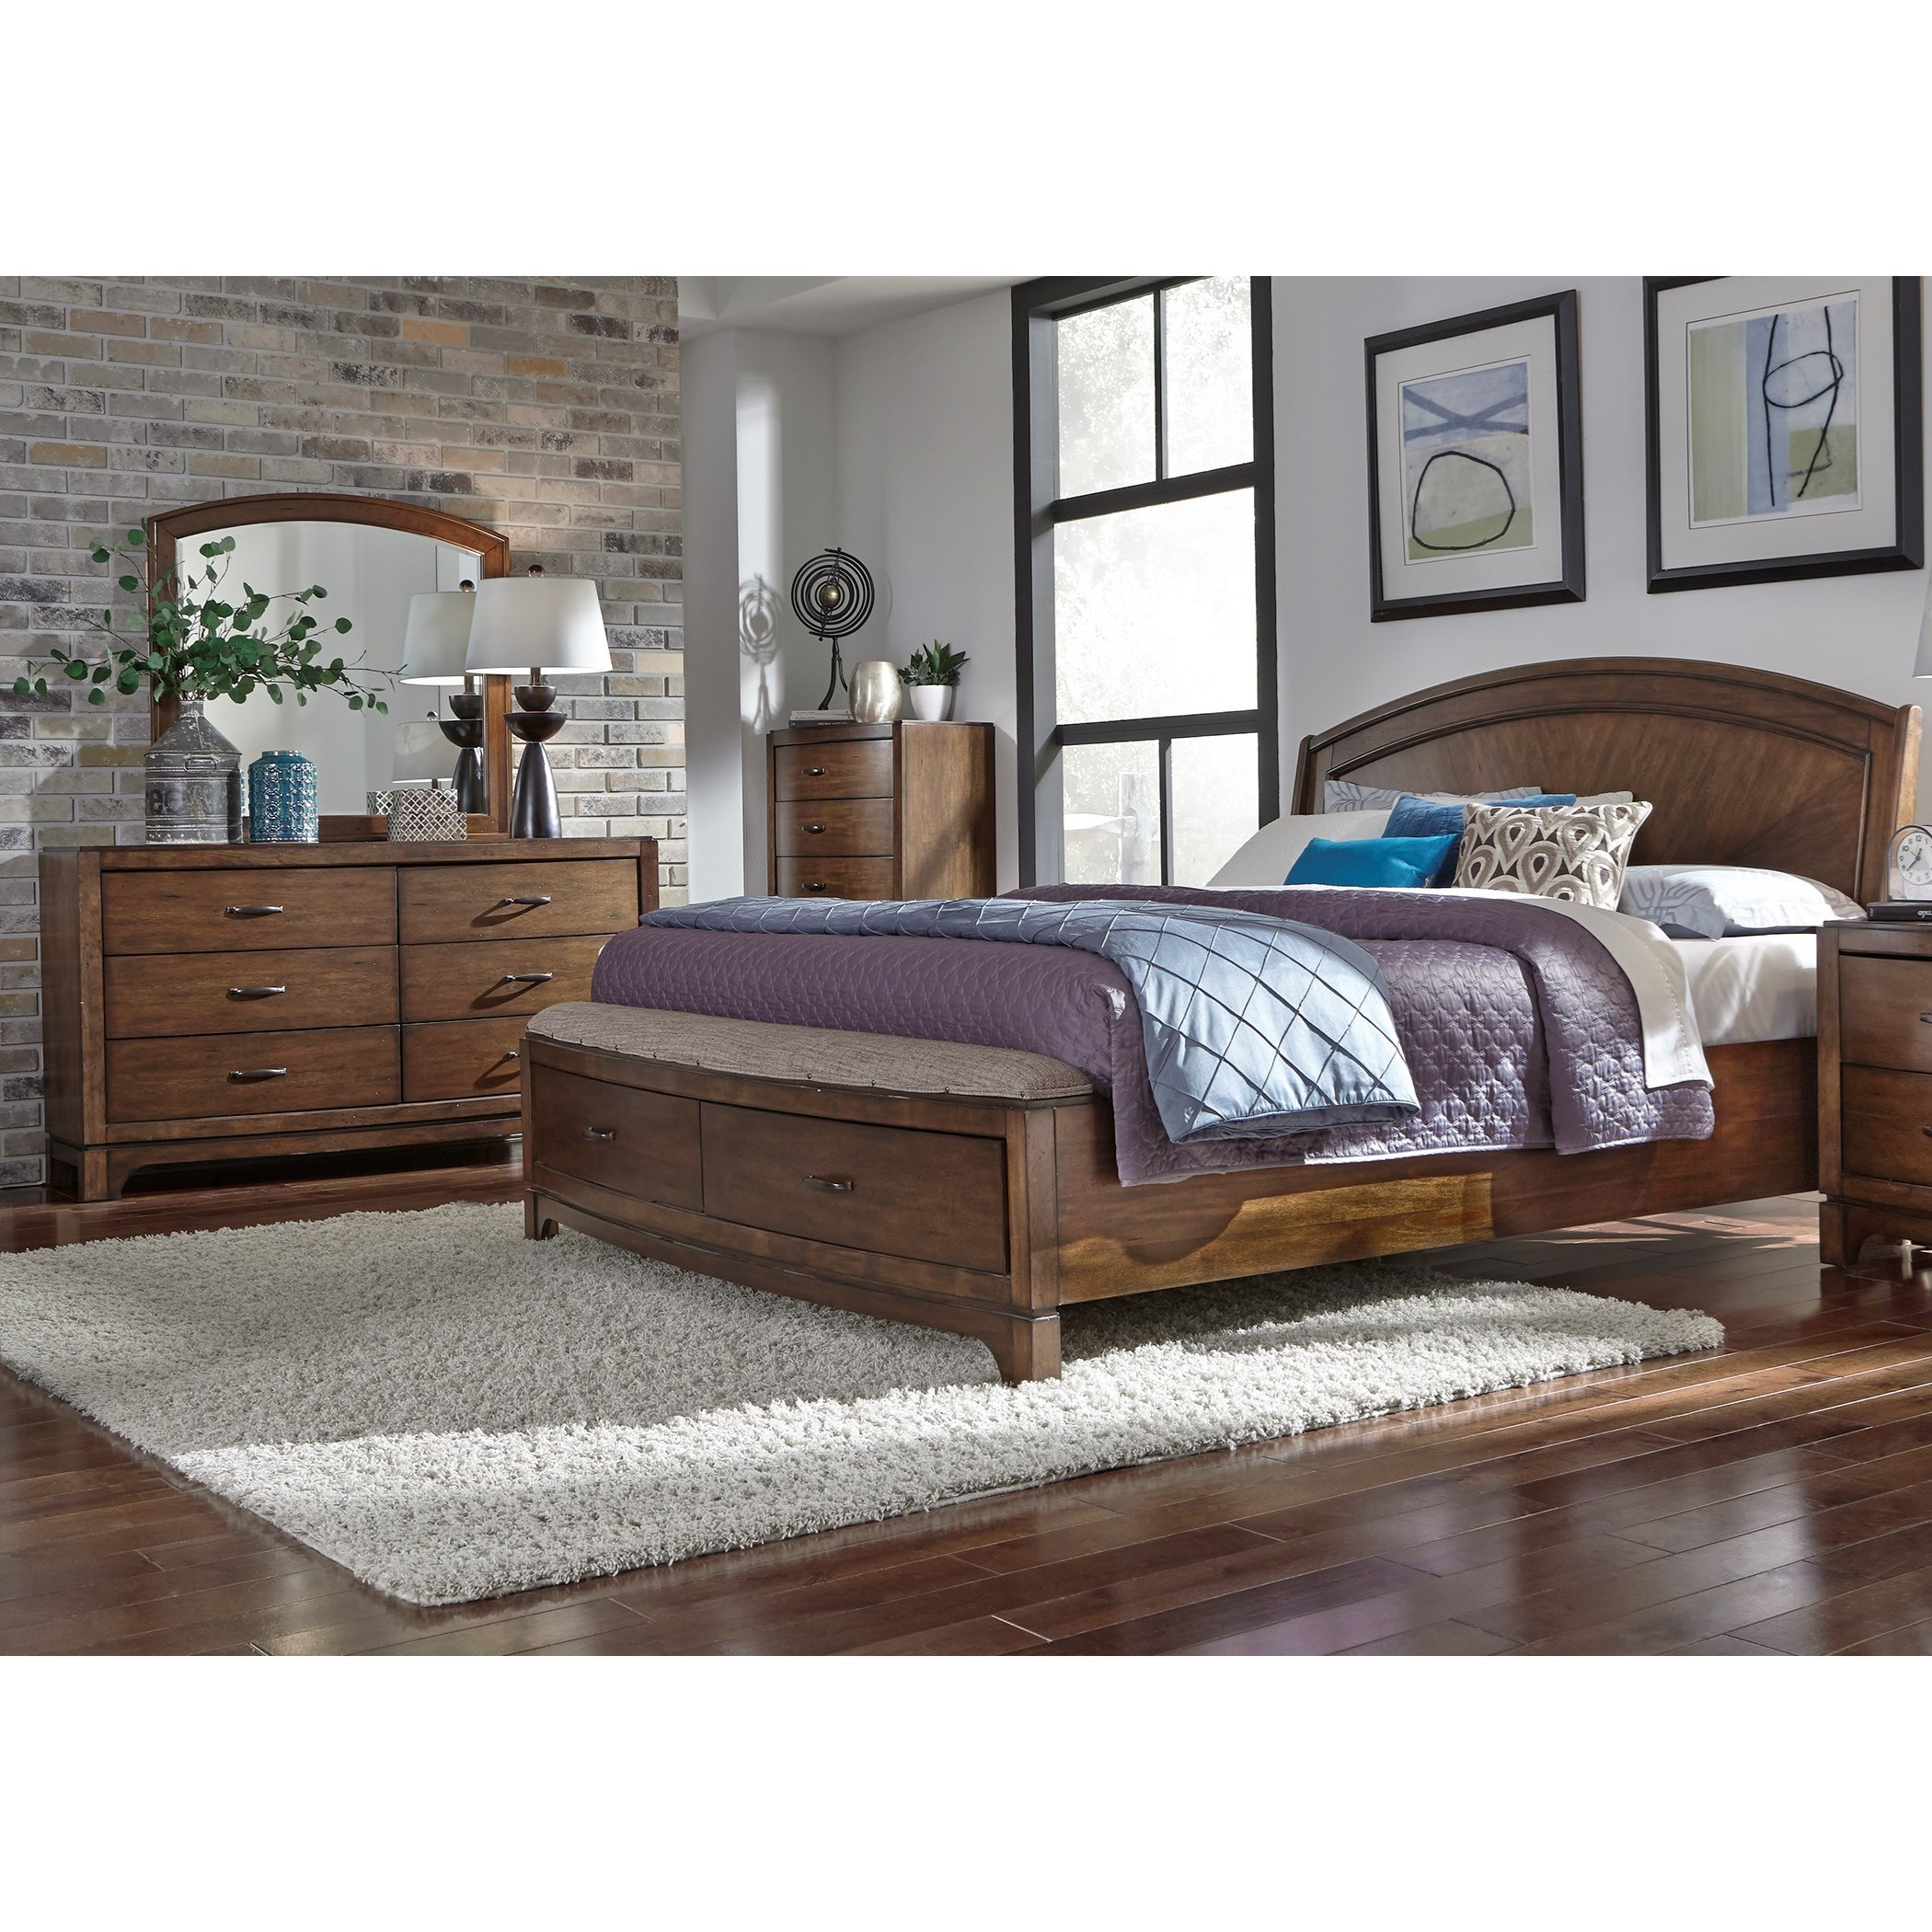 Avalon III Queen Bedroom Group by Liberty Furniture at Nassau Furniture and Mattress